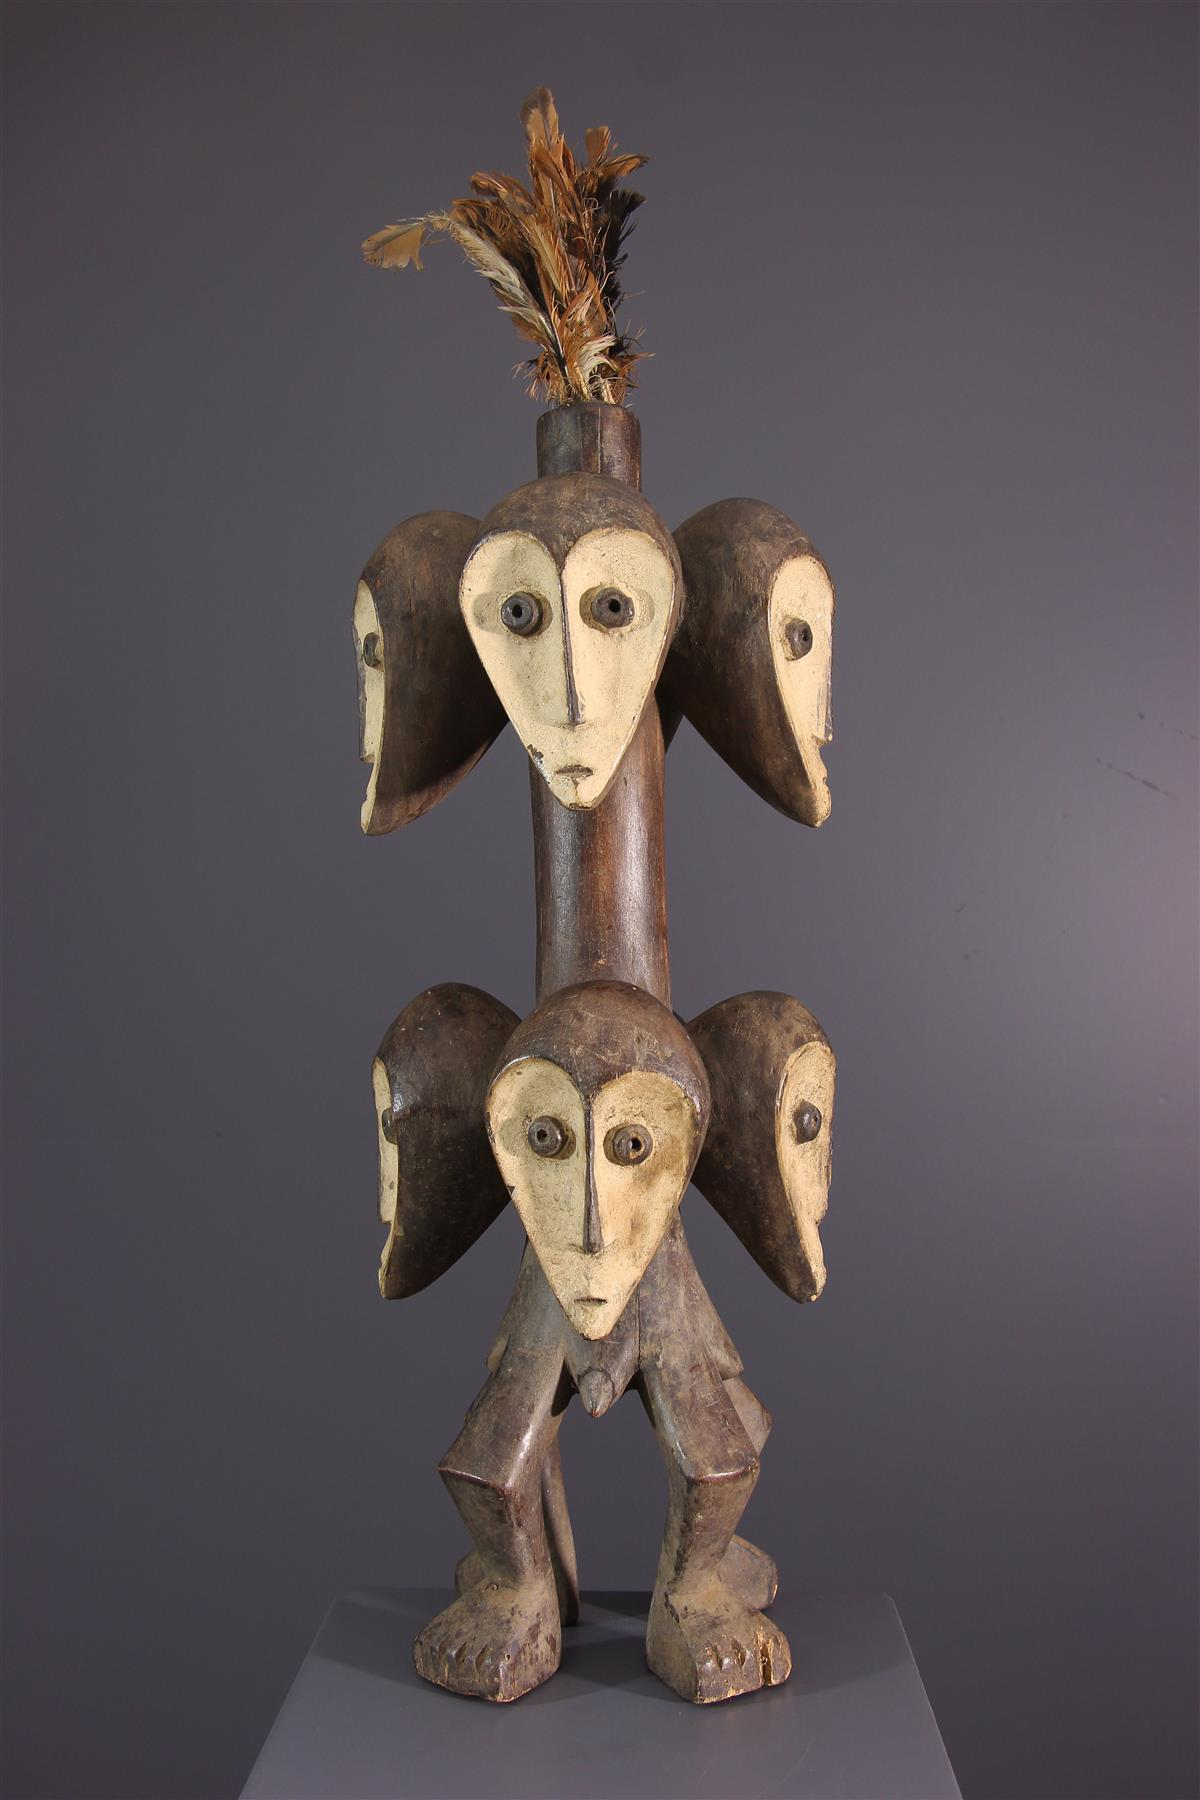 Sculpture Lega - African art